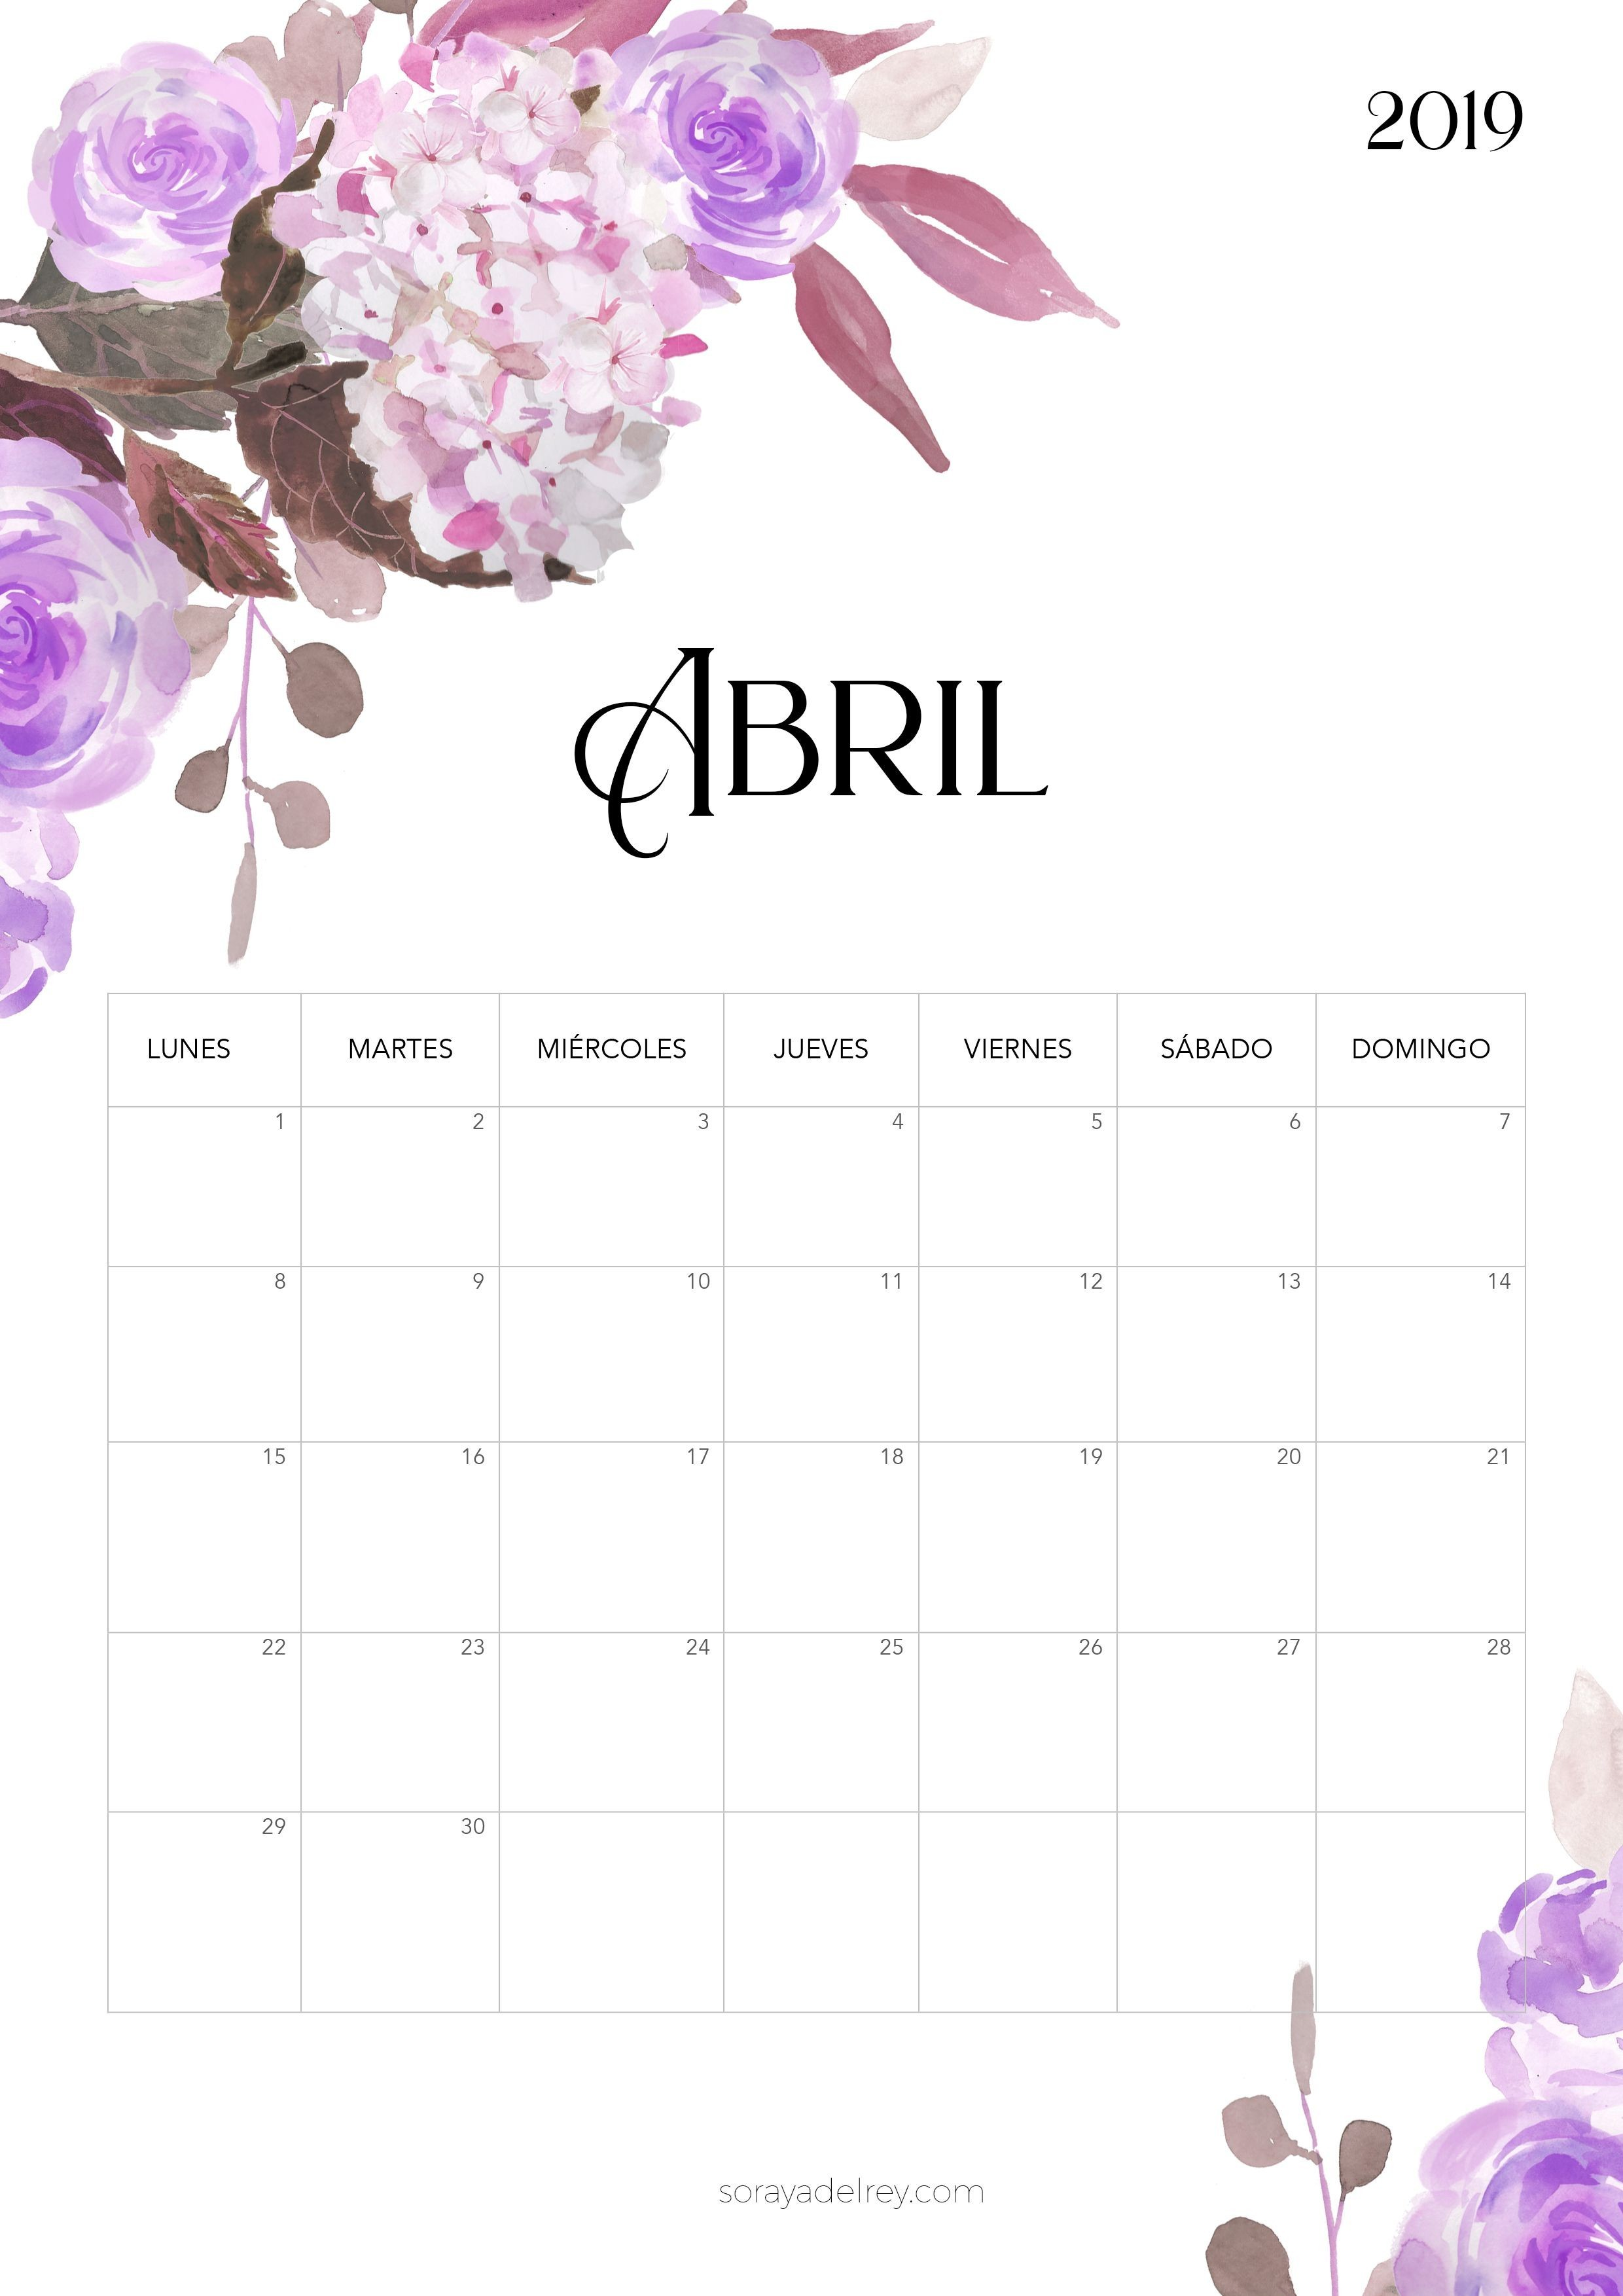 Calendario para imprimir Abril 2019 calendario calendar abril april flores flowers freebie printable imprimir